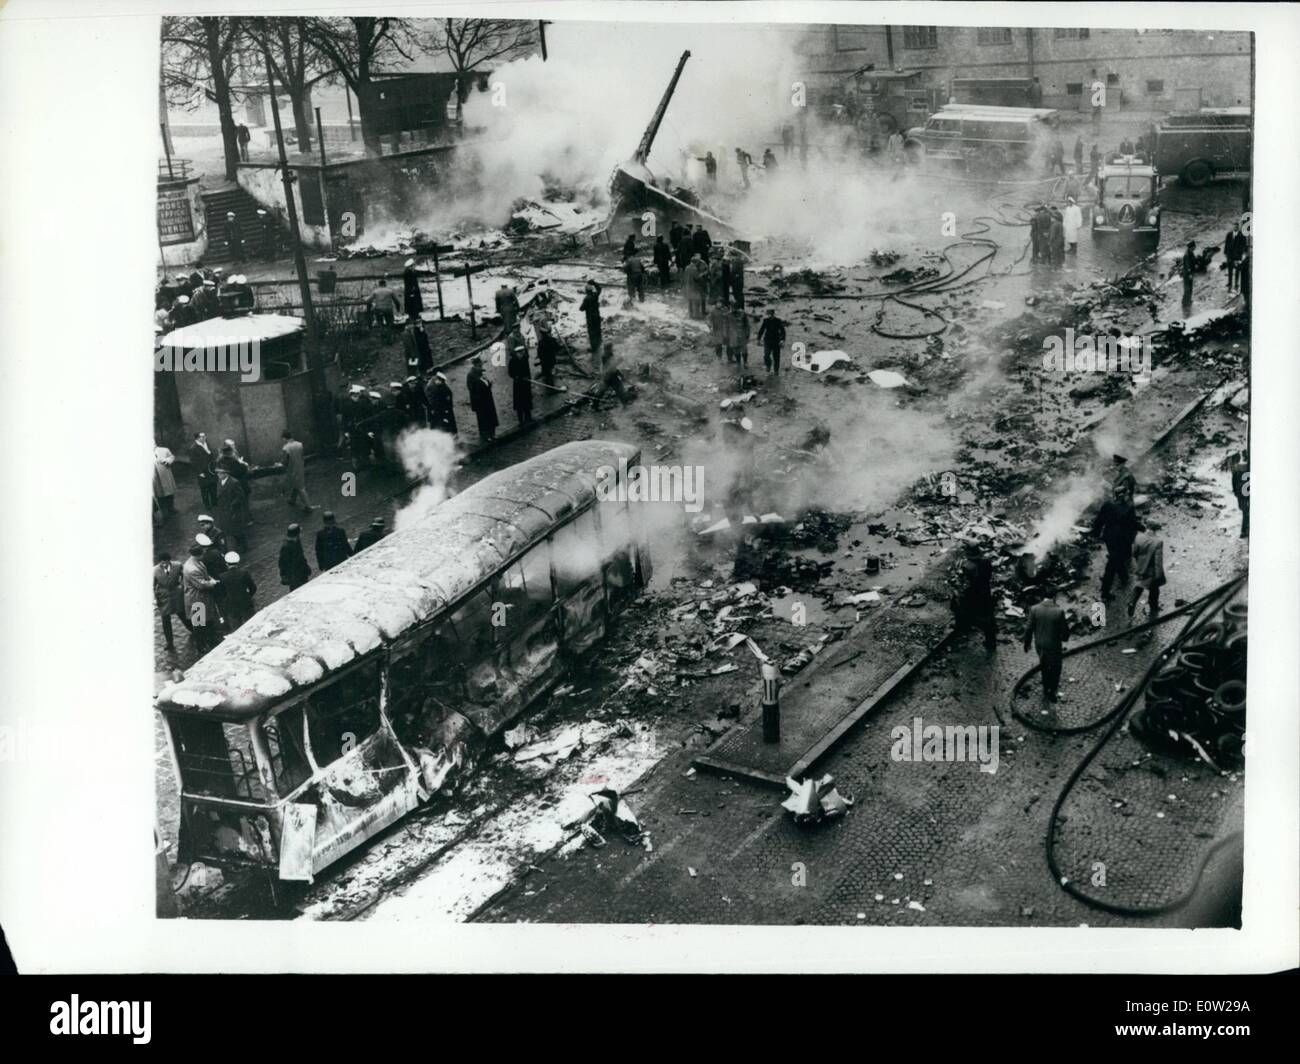 Dec. 17, 1960 - 17-12-60 Aircraft disaster in Munich. Students in machine on way to London for Christmas holiday. An inferno of flames swept the main street of Munich, Germany this afternoon when a Convair Transport aircraft of the United States Air Force crashed on to a tramcar filled with Christmas shoppers. Thirty people are believed to have been killed in the tram. It is believed that there may be some survivors from the aircraft which was carrying 13 American students on their way to spend Christmas with parents in England and a crew of seven. The machine was a U.S - Stock Image